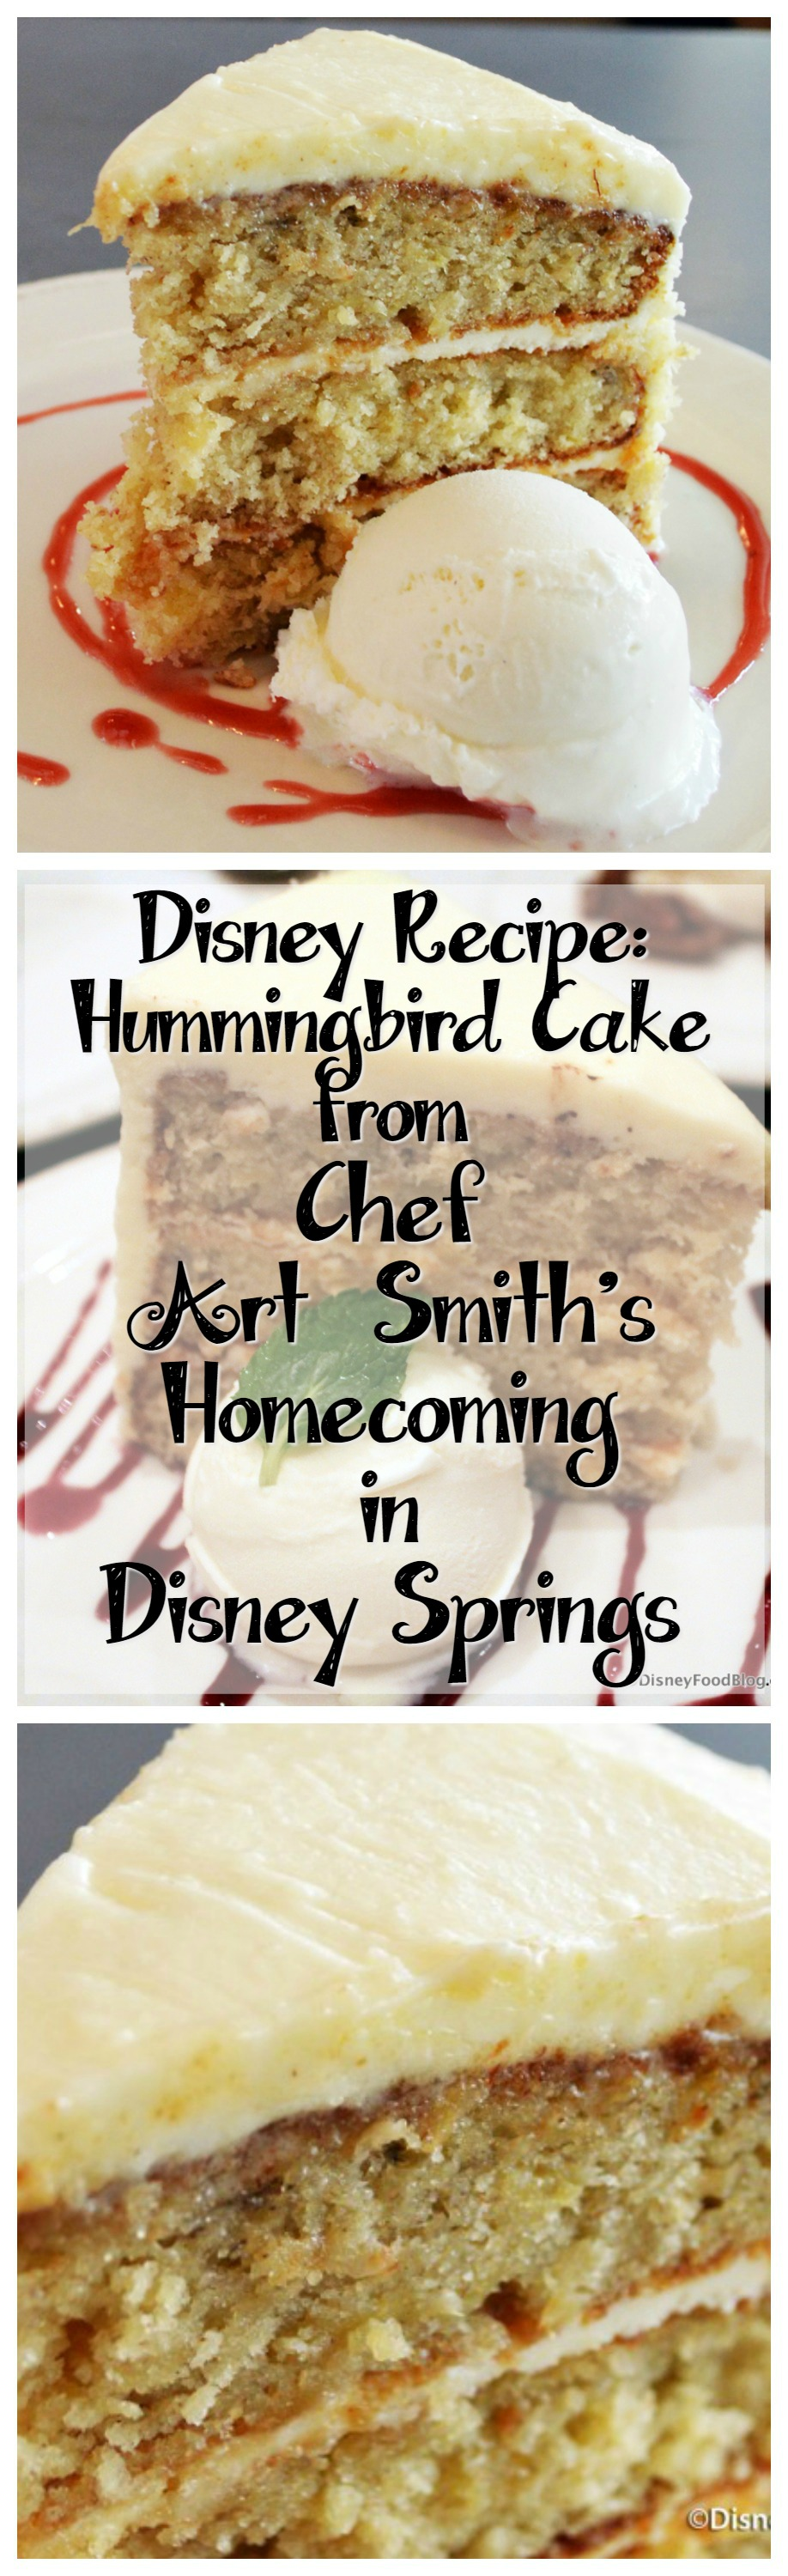 review chef art smiths homecoming florida kitchen at